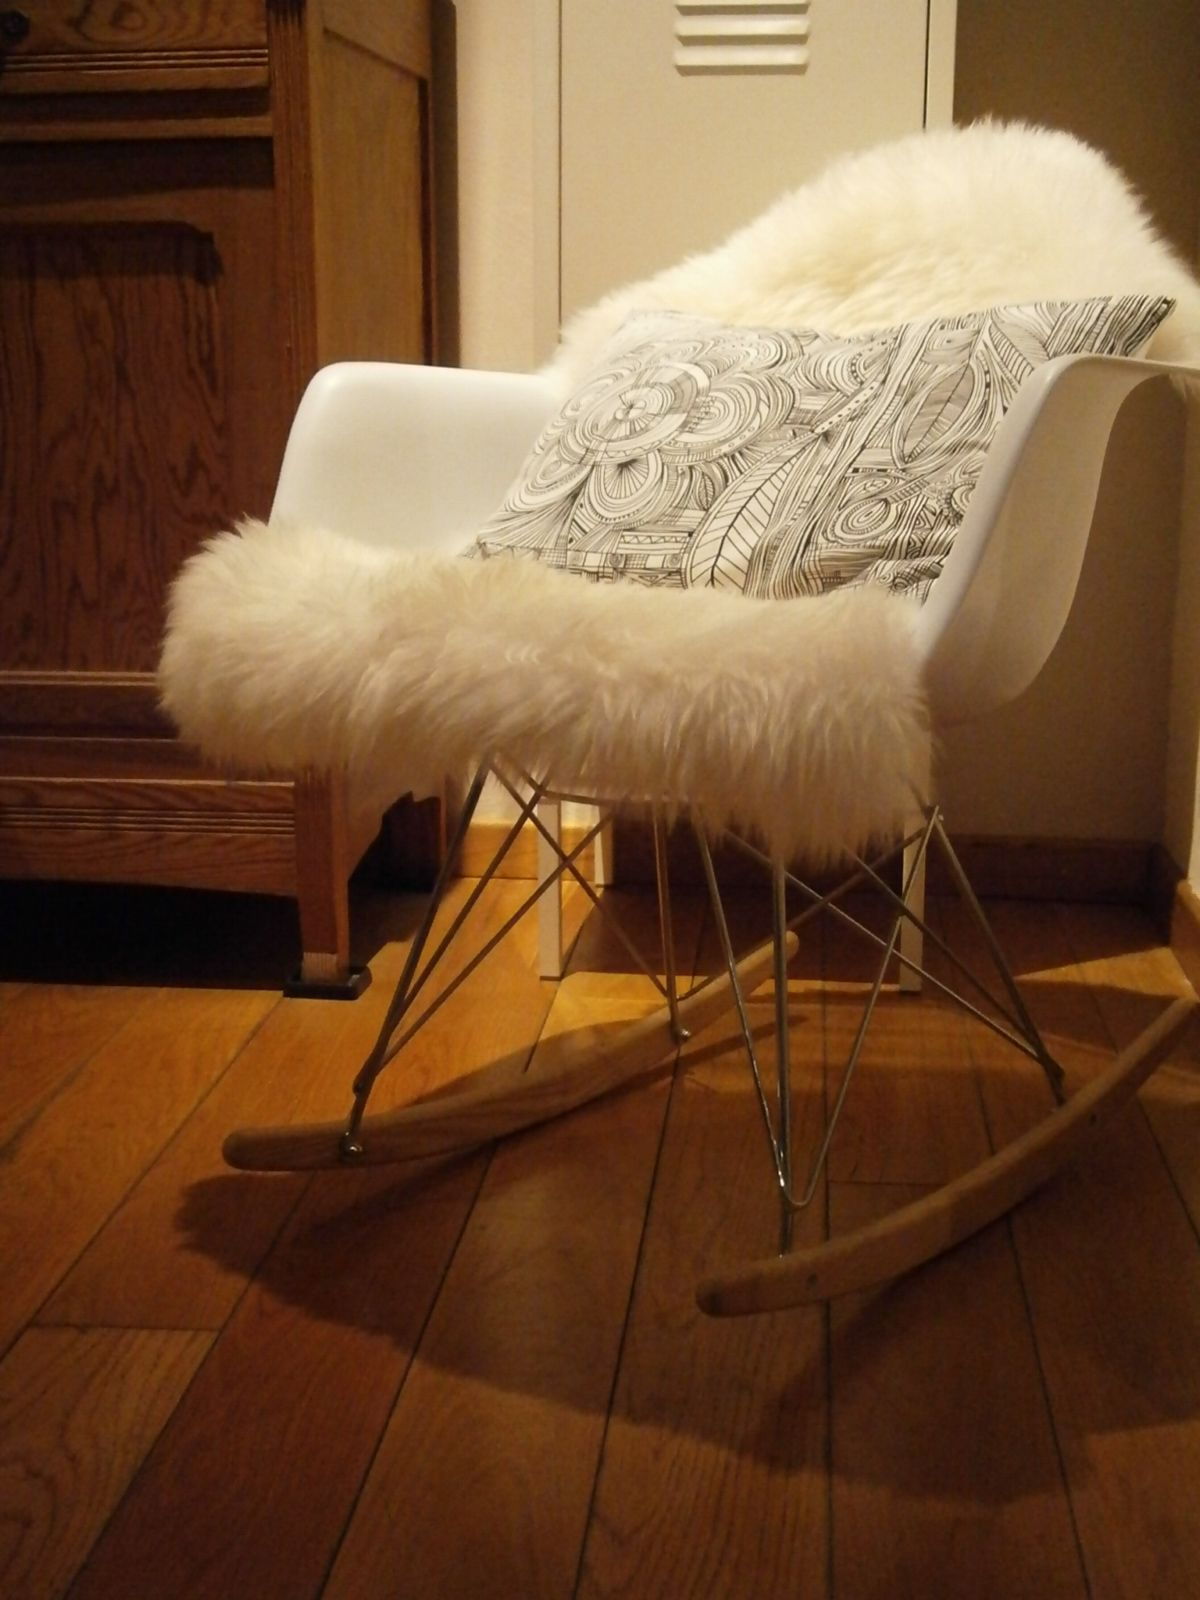 Best chaise peau de coussin with fauteuil nils ikea for Chaise fauteuil ikea